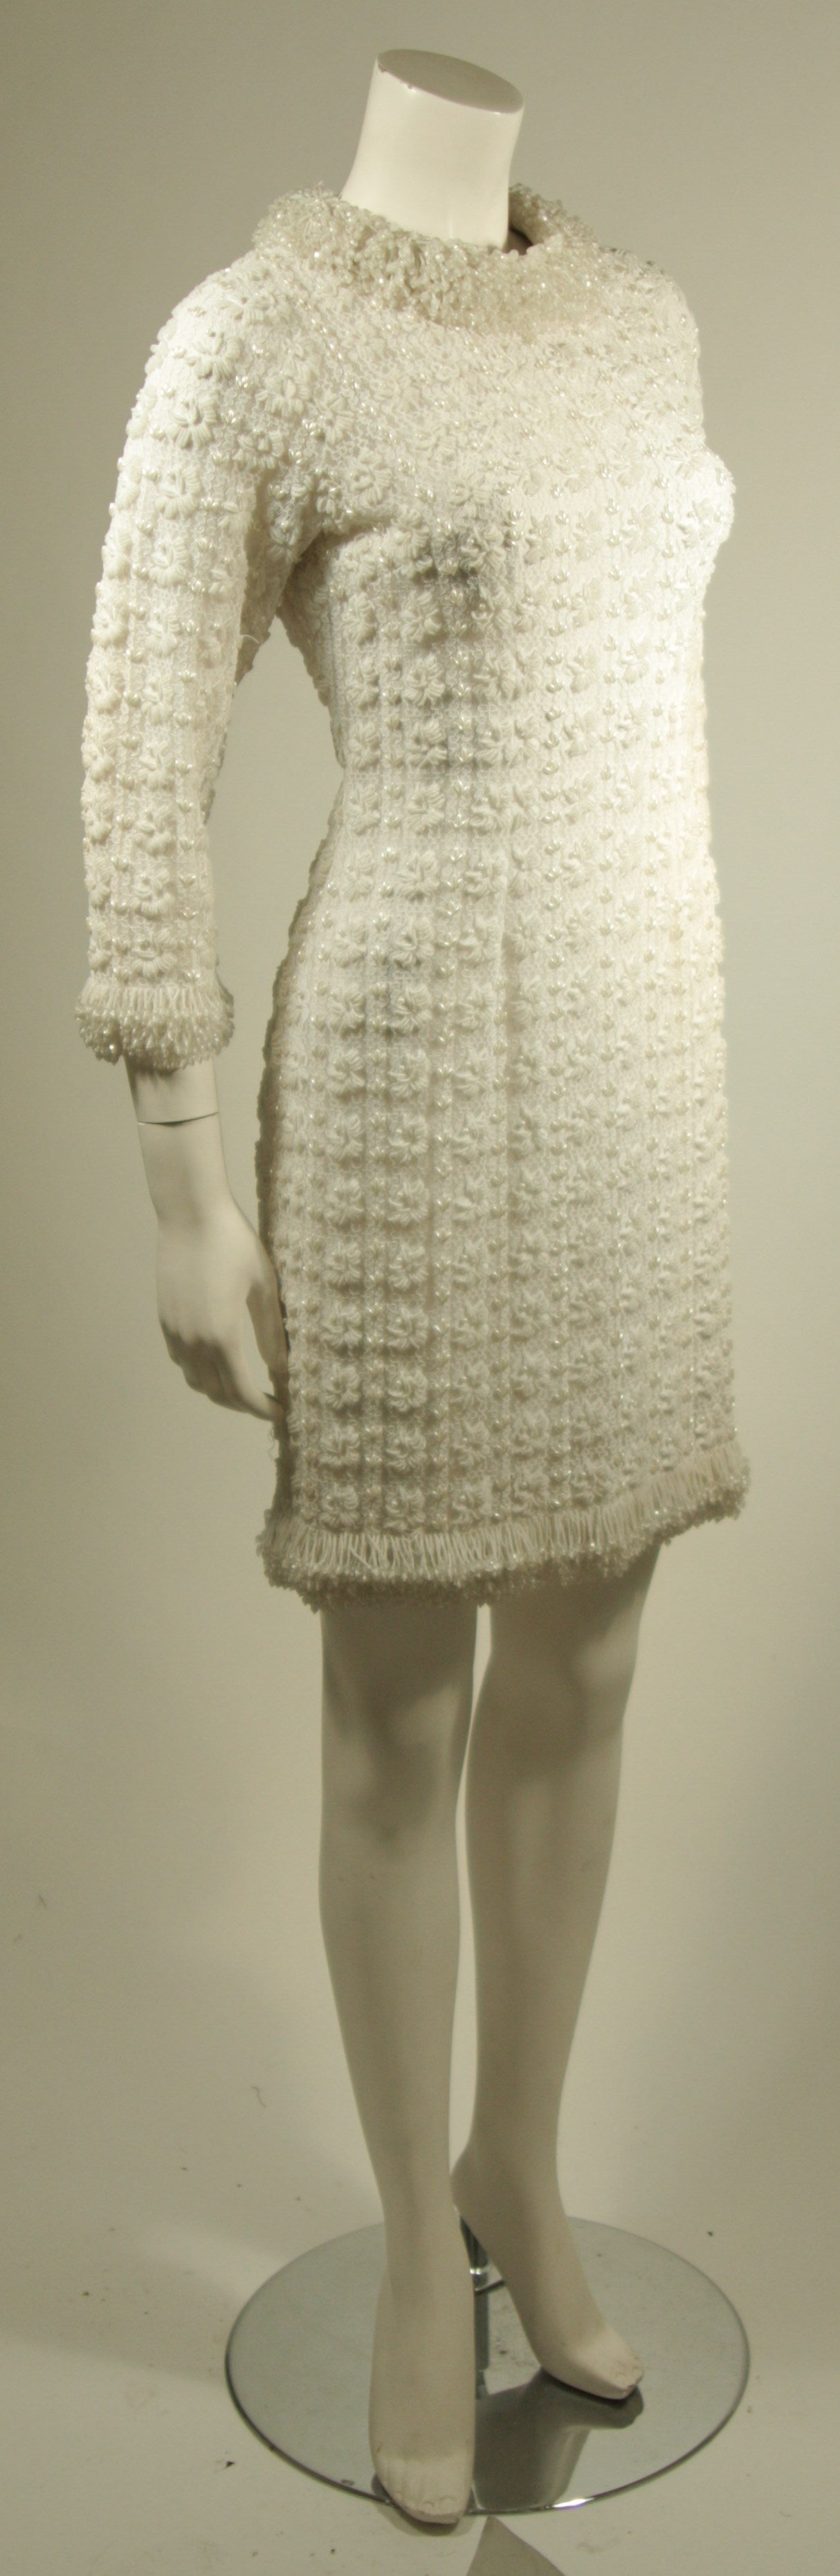 1960's White Beaded Cocktail Dress In Excellent Condition For Sale In Los Angeles, CA